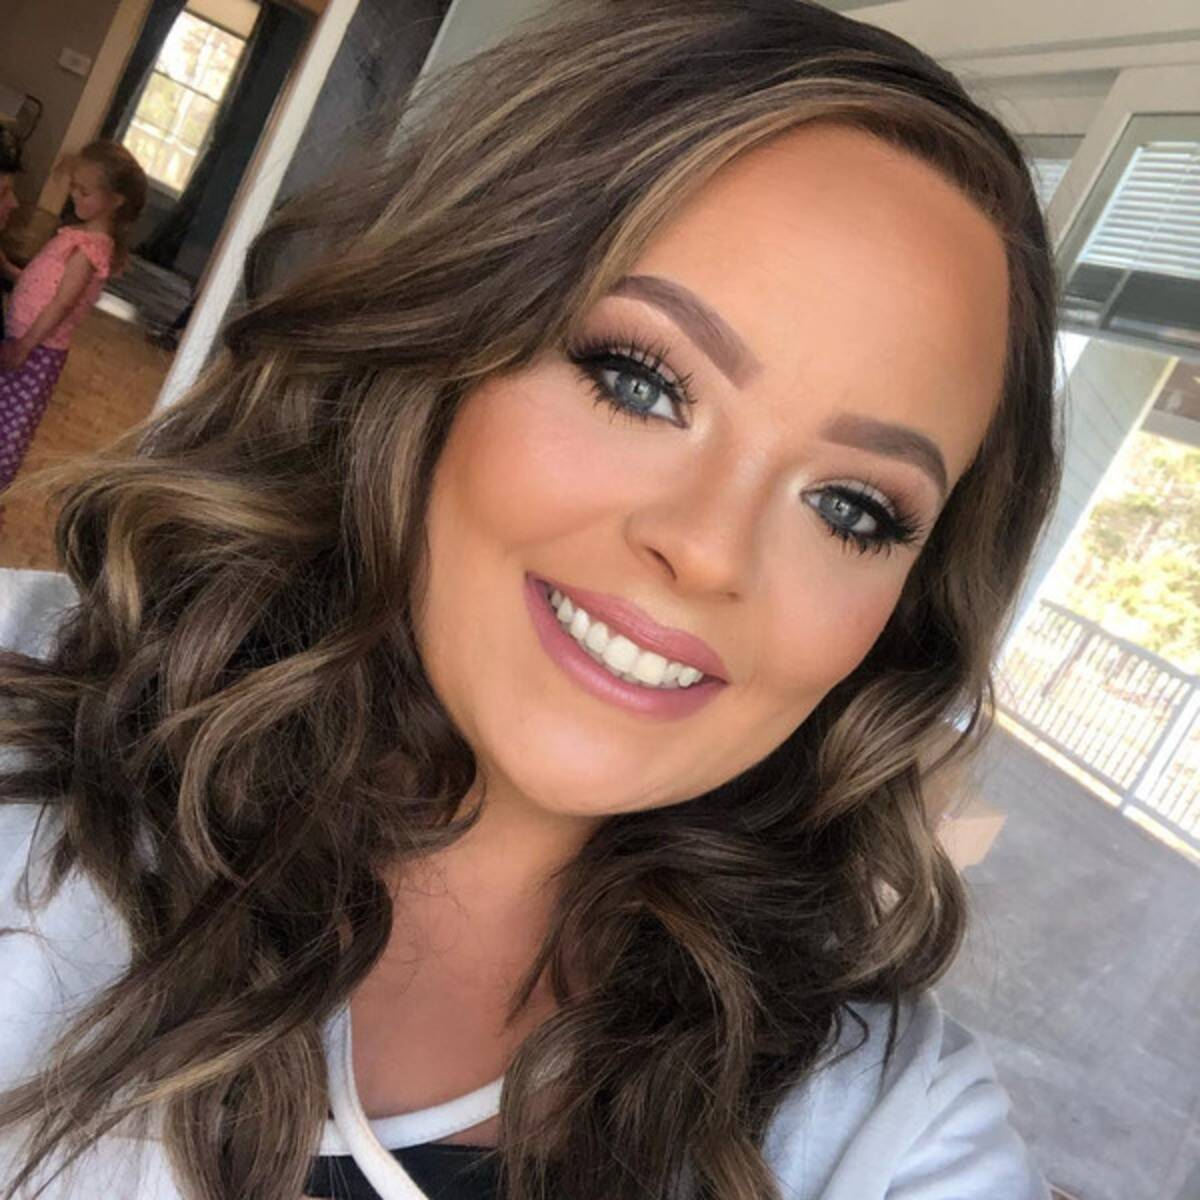 catelynn-lowell-opens-up-about-recent-miscarriage